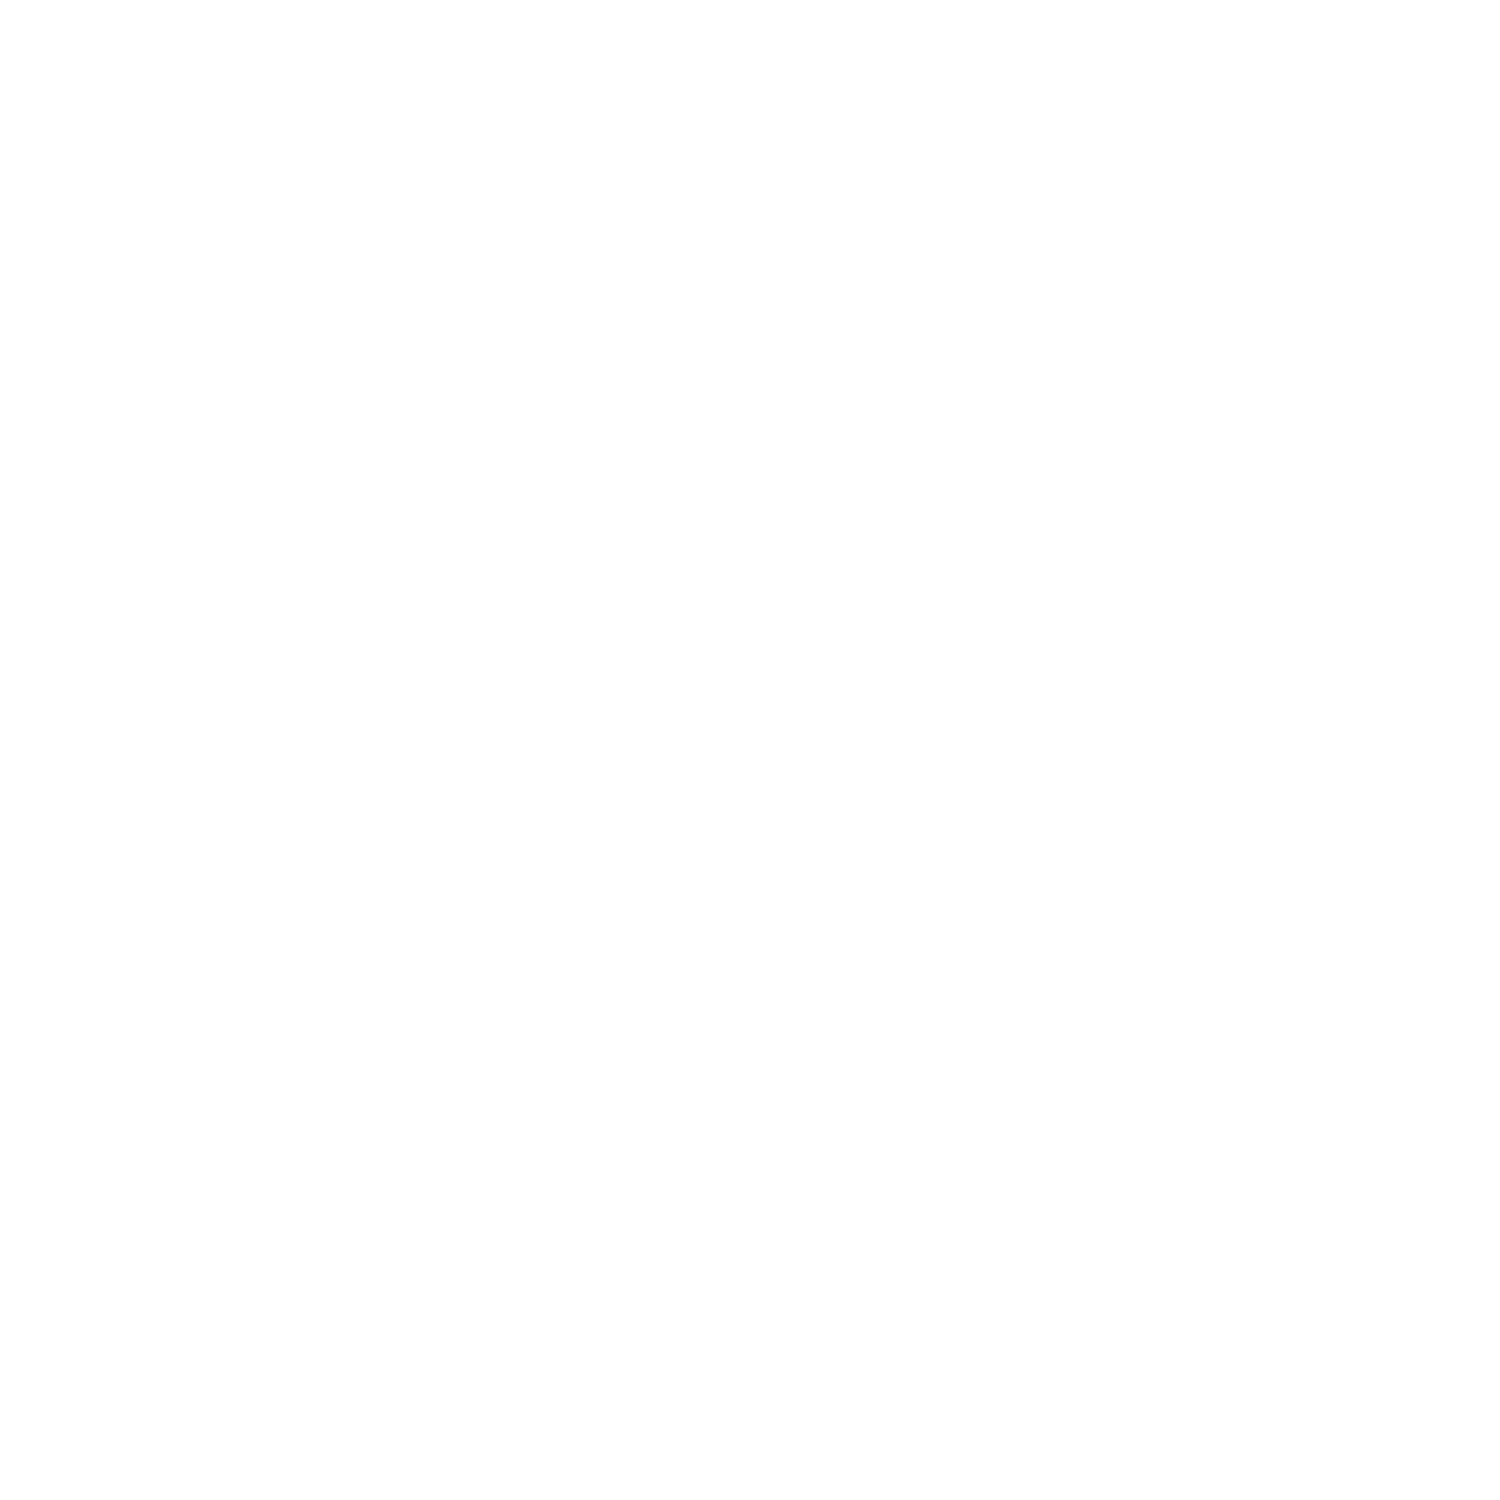 Theory Coffeehouse & Juicery